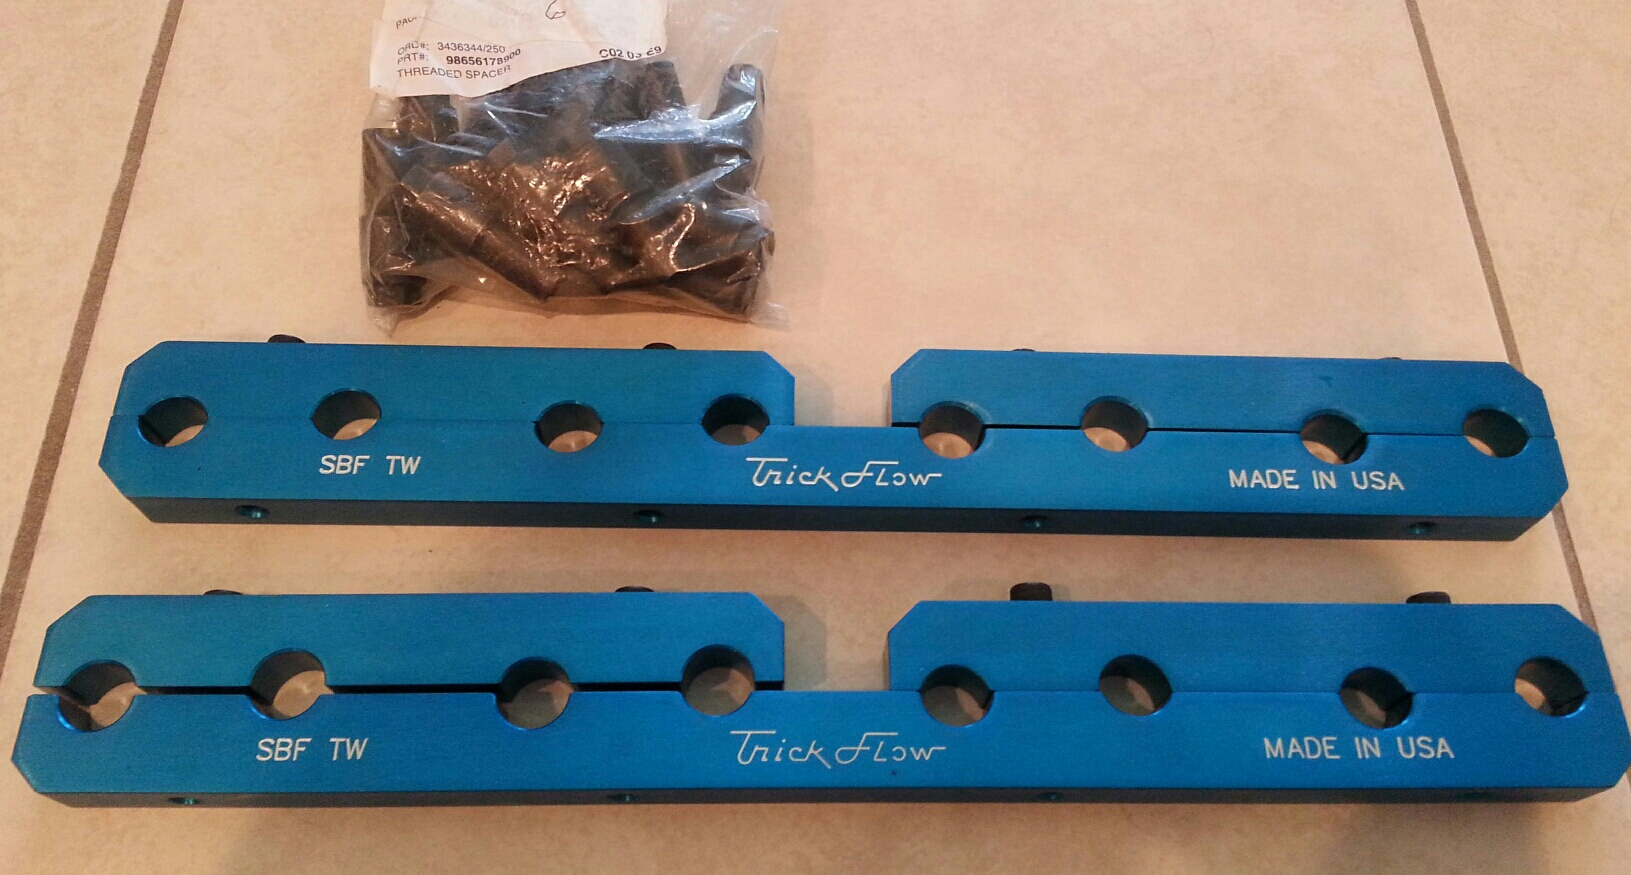 SBF Trick-flow twisted wedge rocker stud girdles and valve cover spacers-20170709_115633_resized-1-jpg